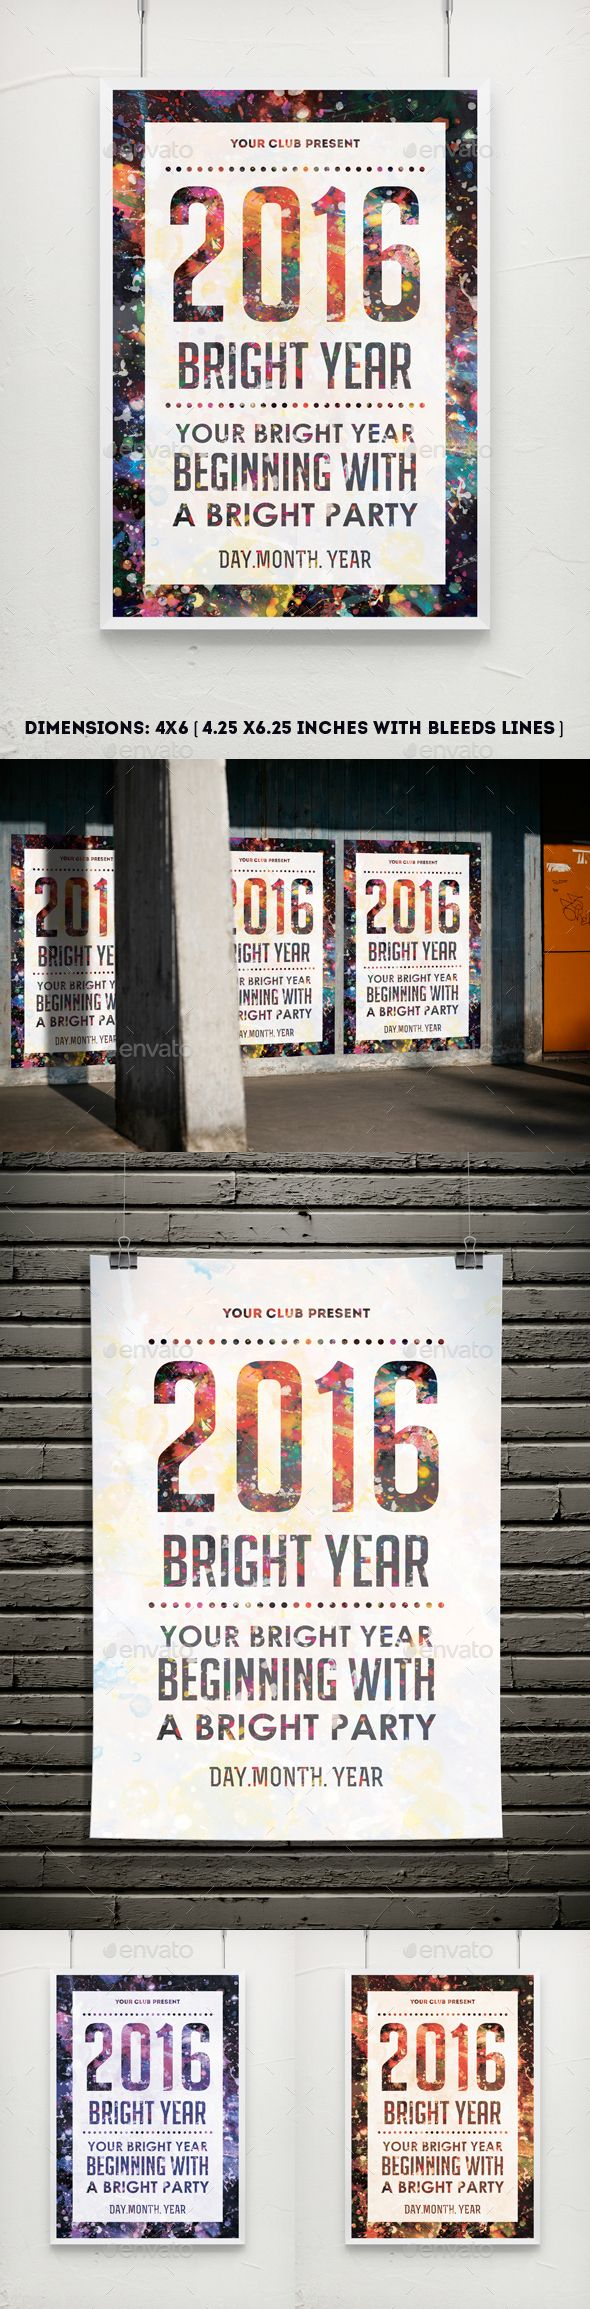 Poster design download - Bright Year Party Poster Flyer Template